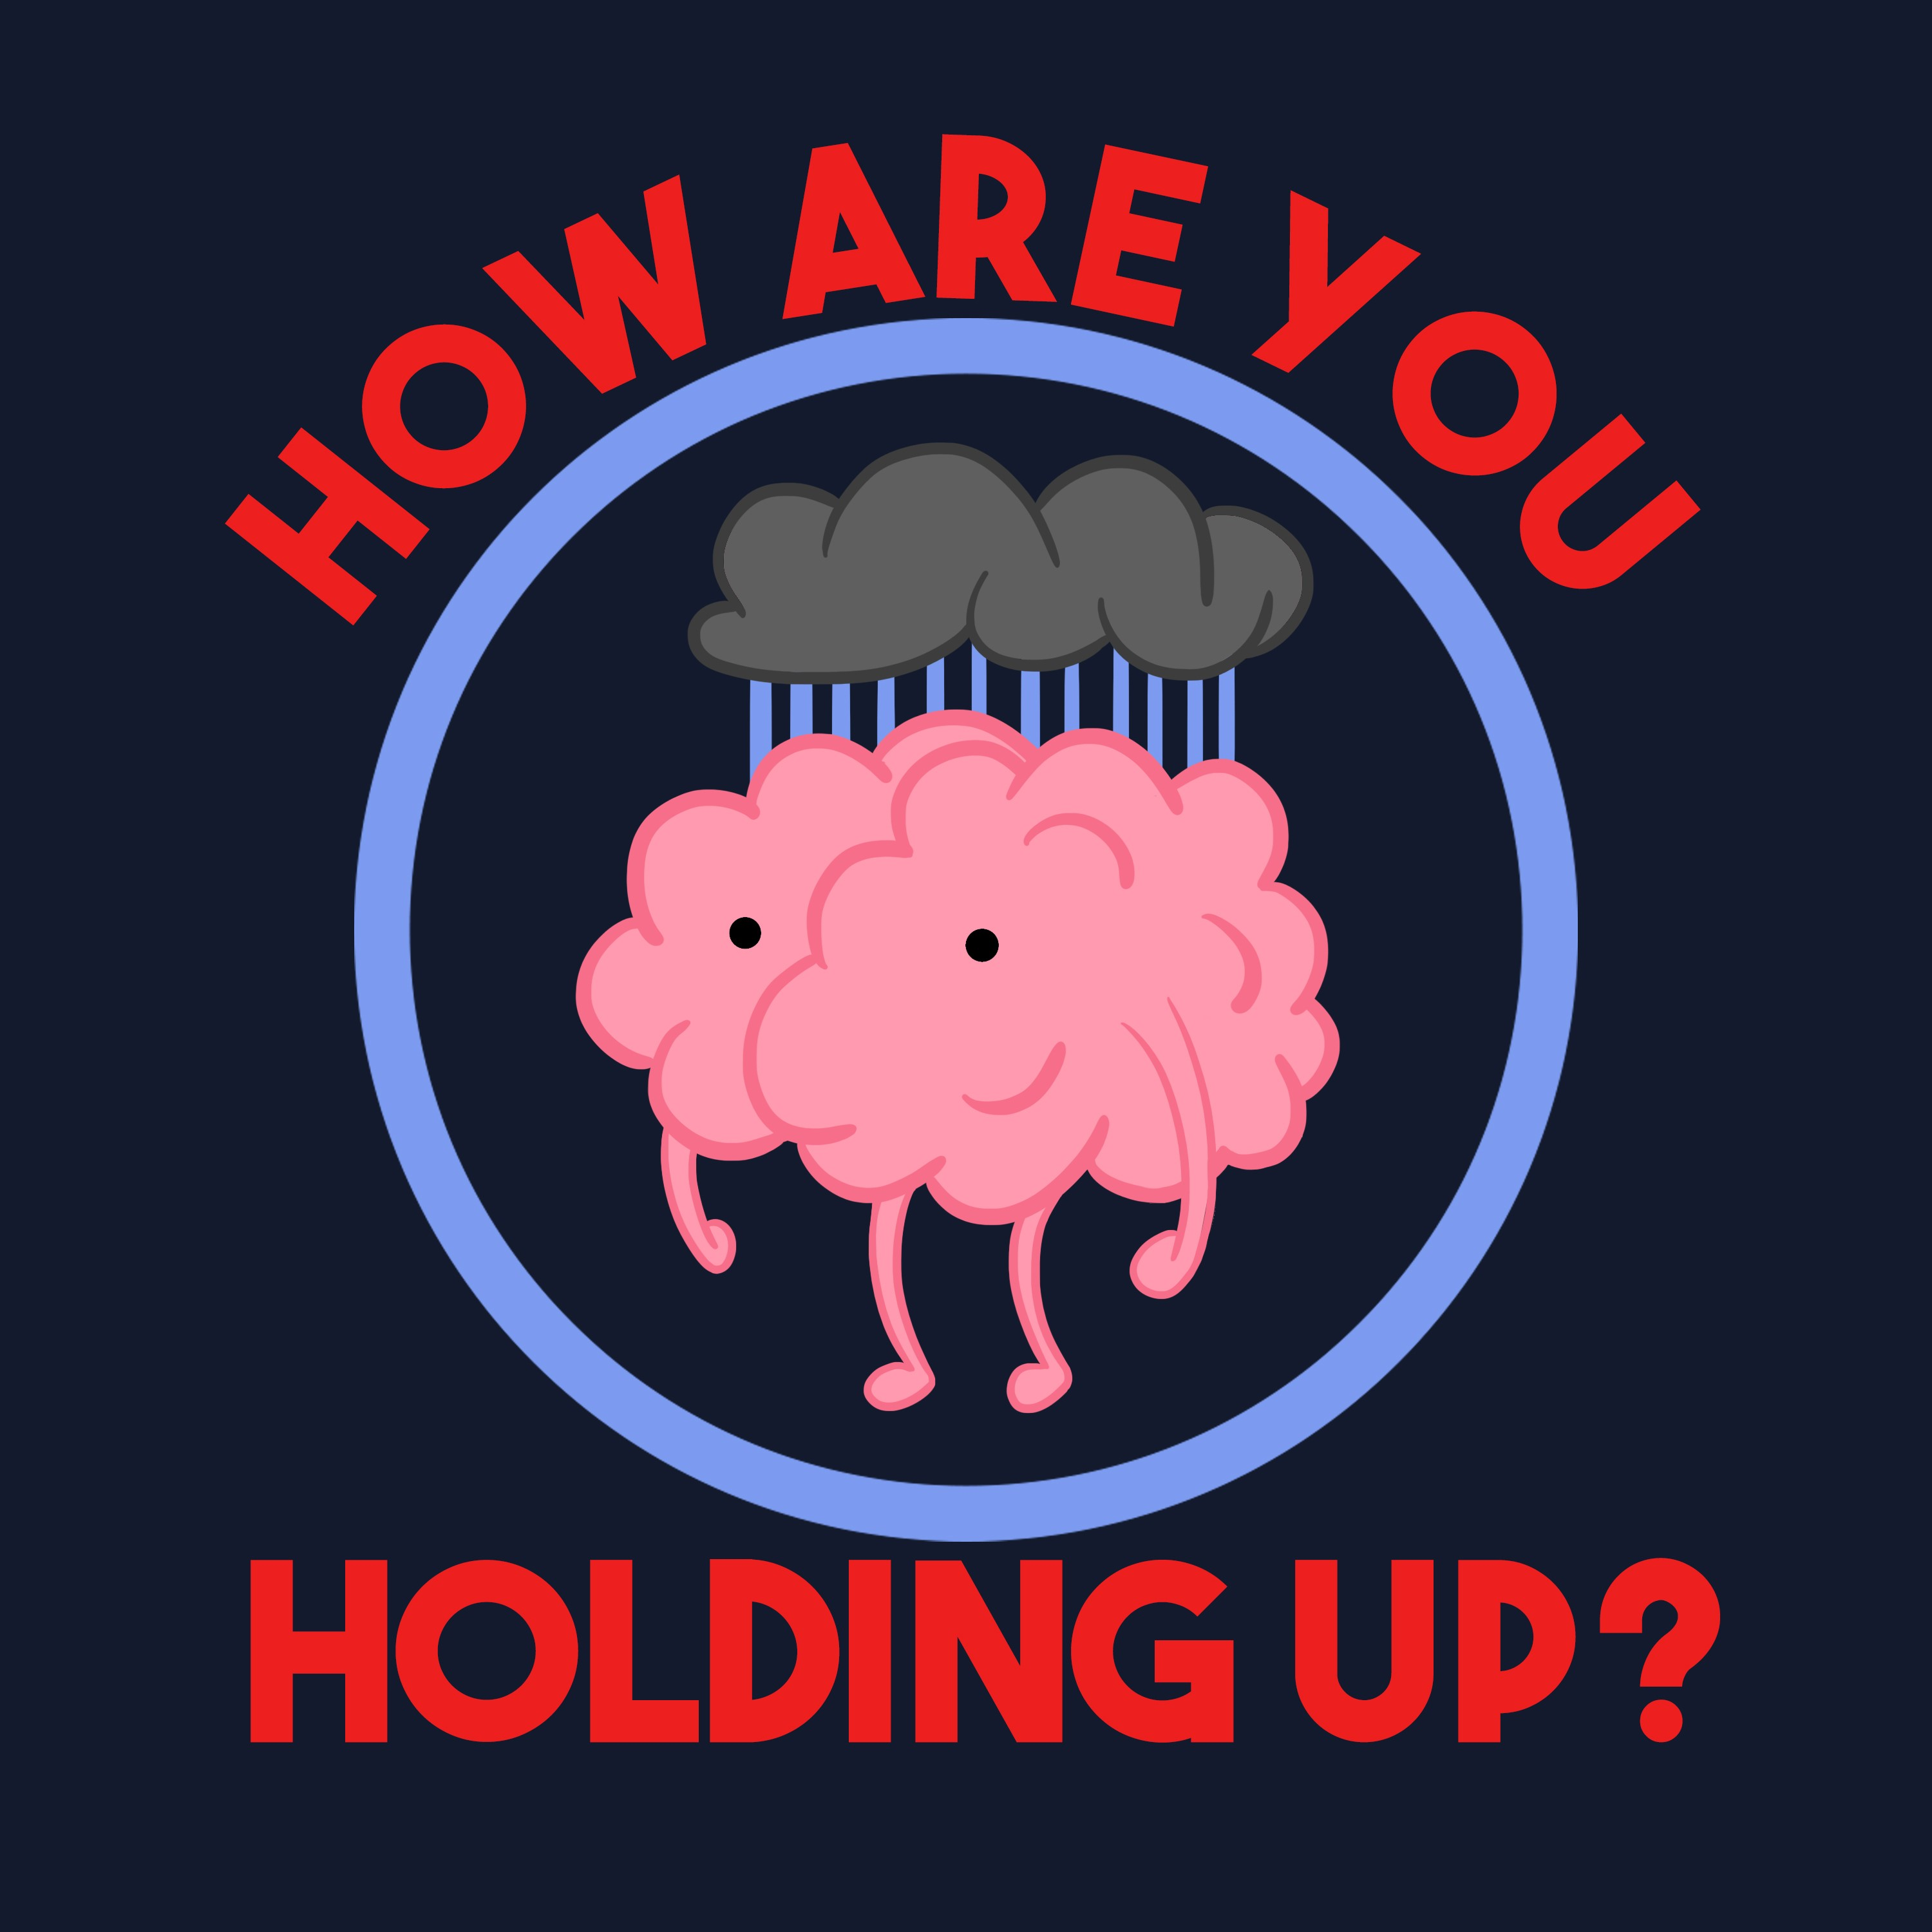 How Are You Holding Up?